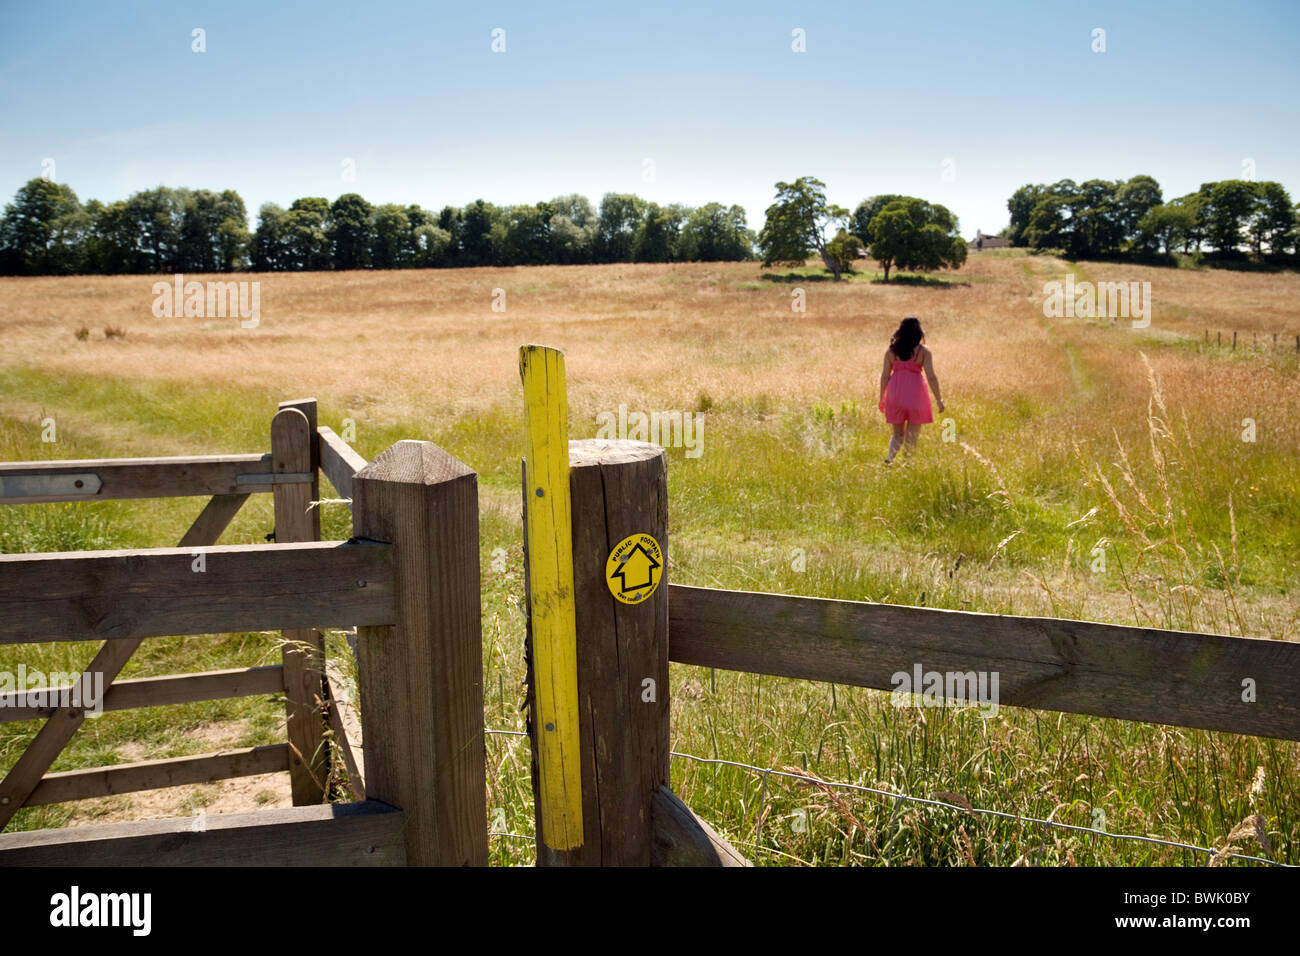 Teenage girl walking in the country on a summers day, Lyminge village near Folkestone, Kent UK - Stock Image